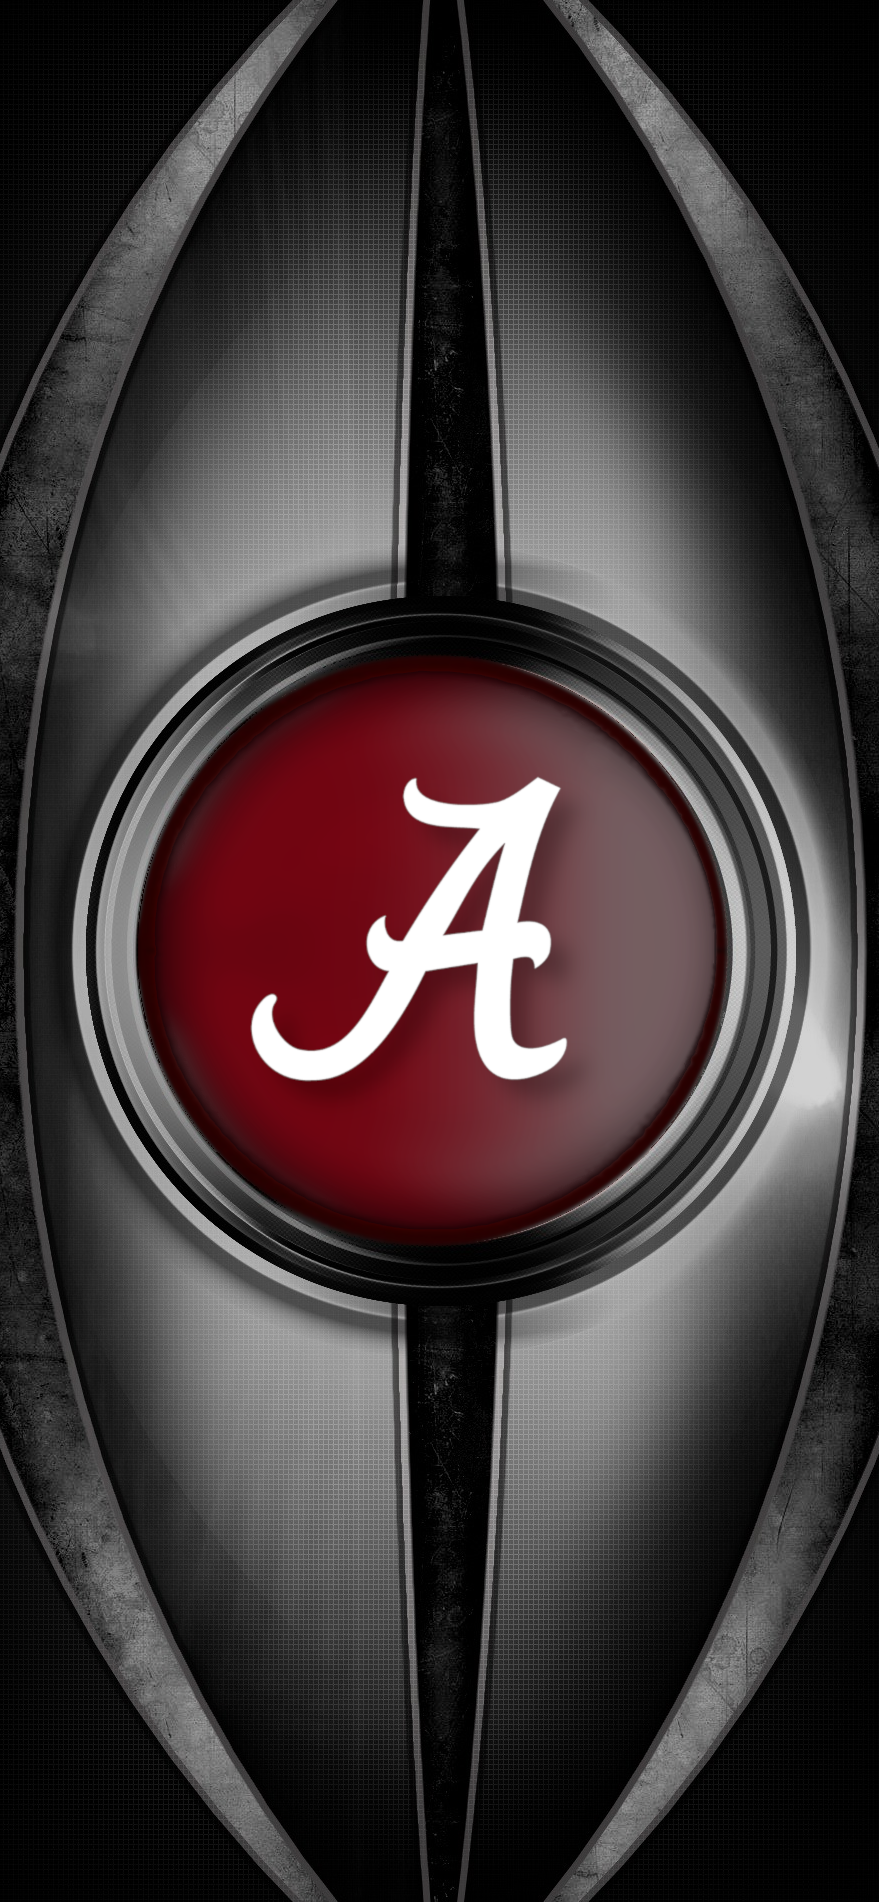 Metal2 Alabama Crimson Tide Football Wallpaper Alabama Wallpaper Crimson Tide Football